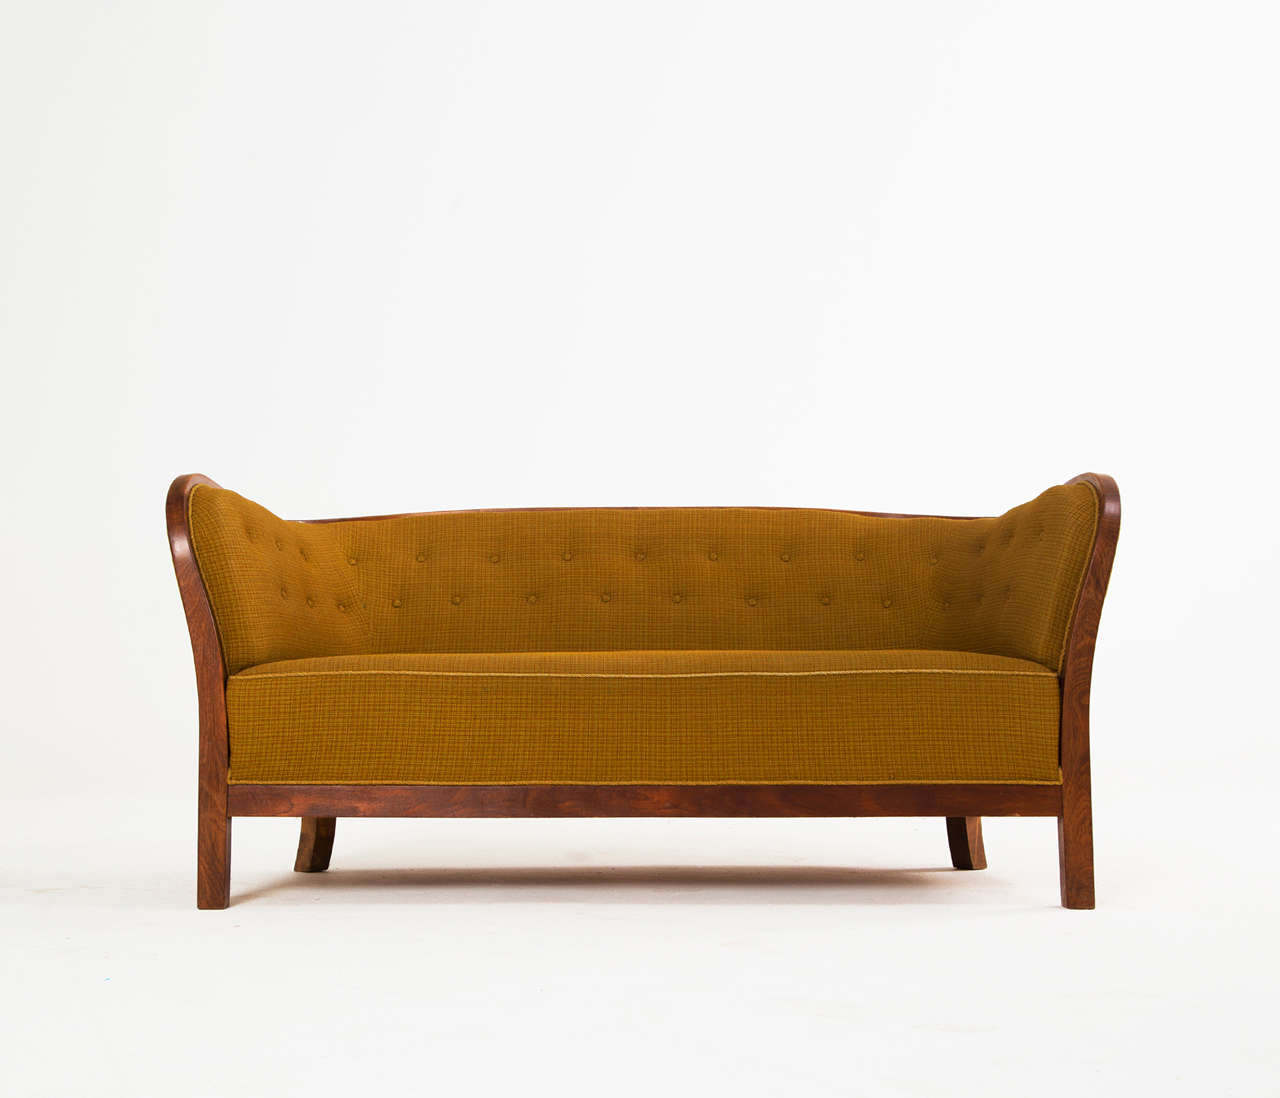 a sofa in the forties cognac leather and loveseat 1940s danish art deco for sale at 1stdibs